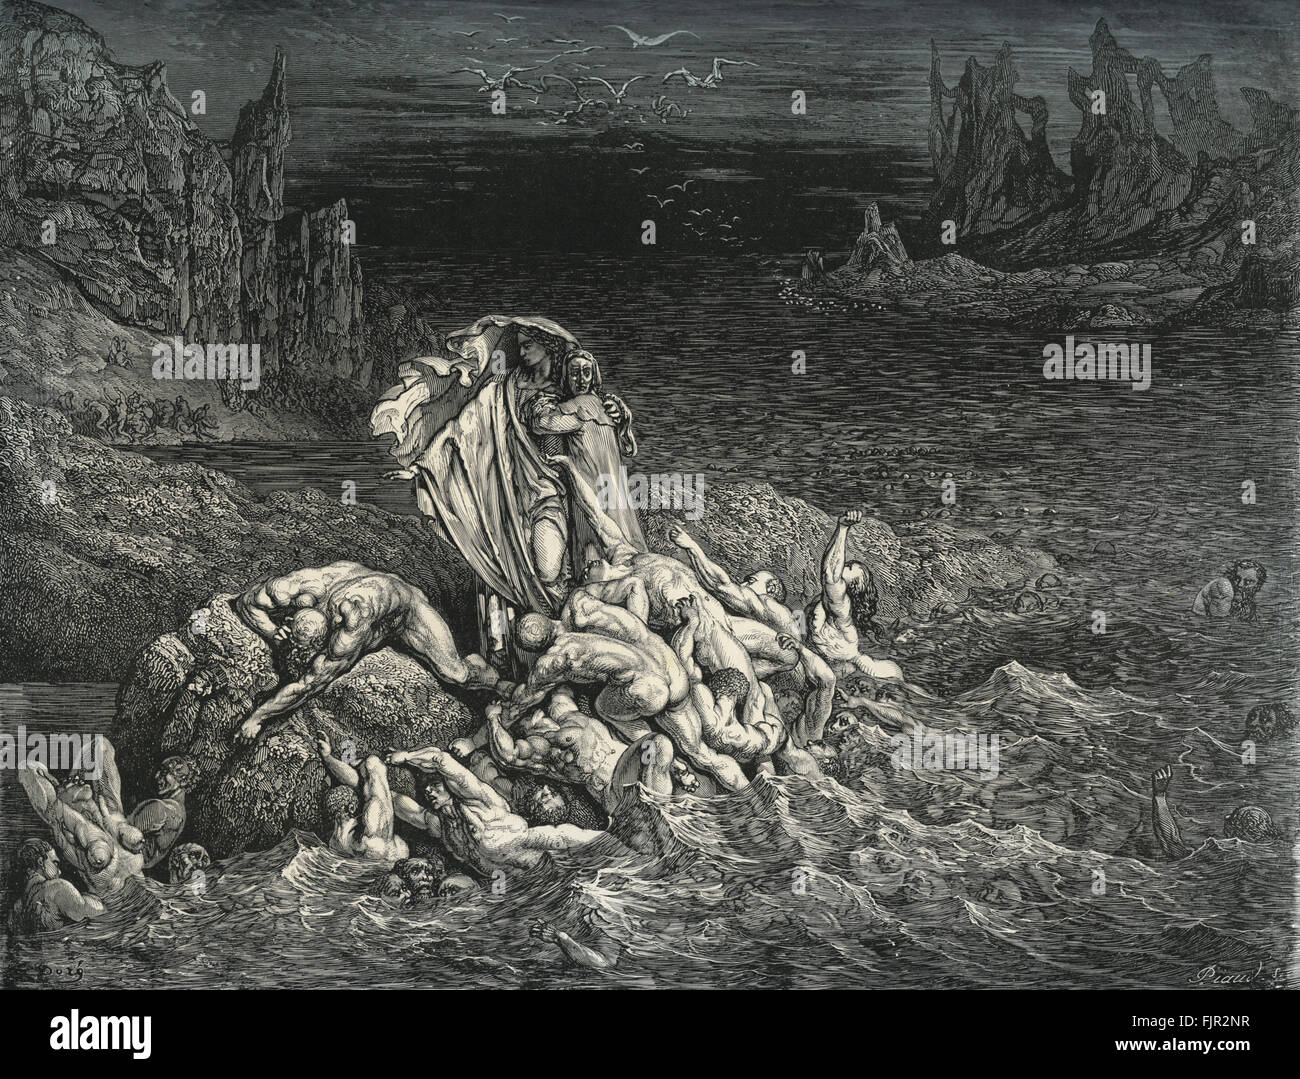 dante alighieri the divine comedy. the inferno essay Essay editing services online written as the first of three movements of the divine comedy, the inferno tells of one man's journey into alighieri, dante.